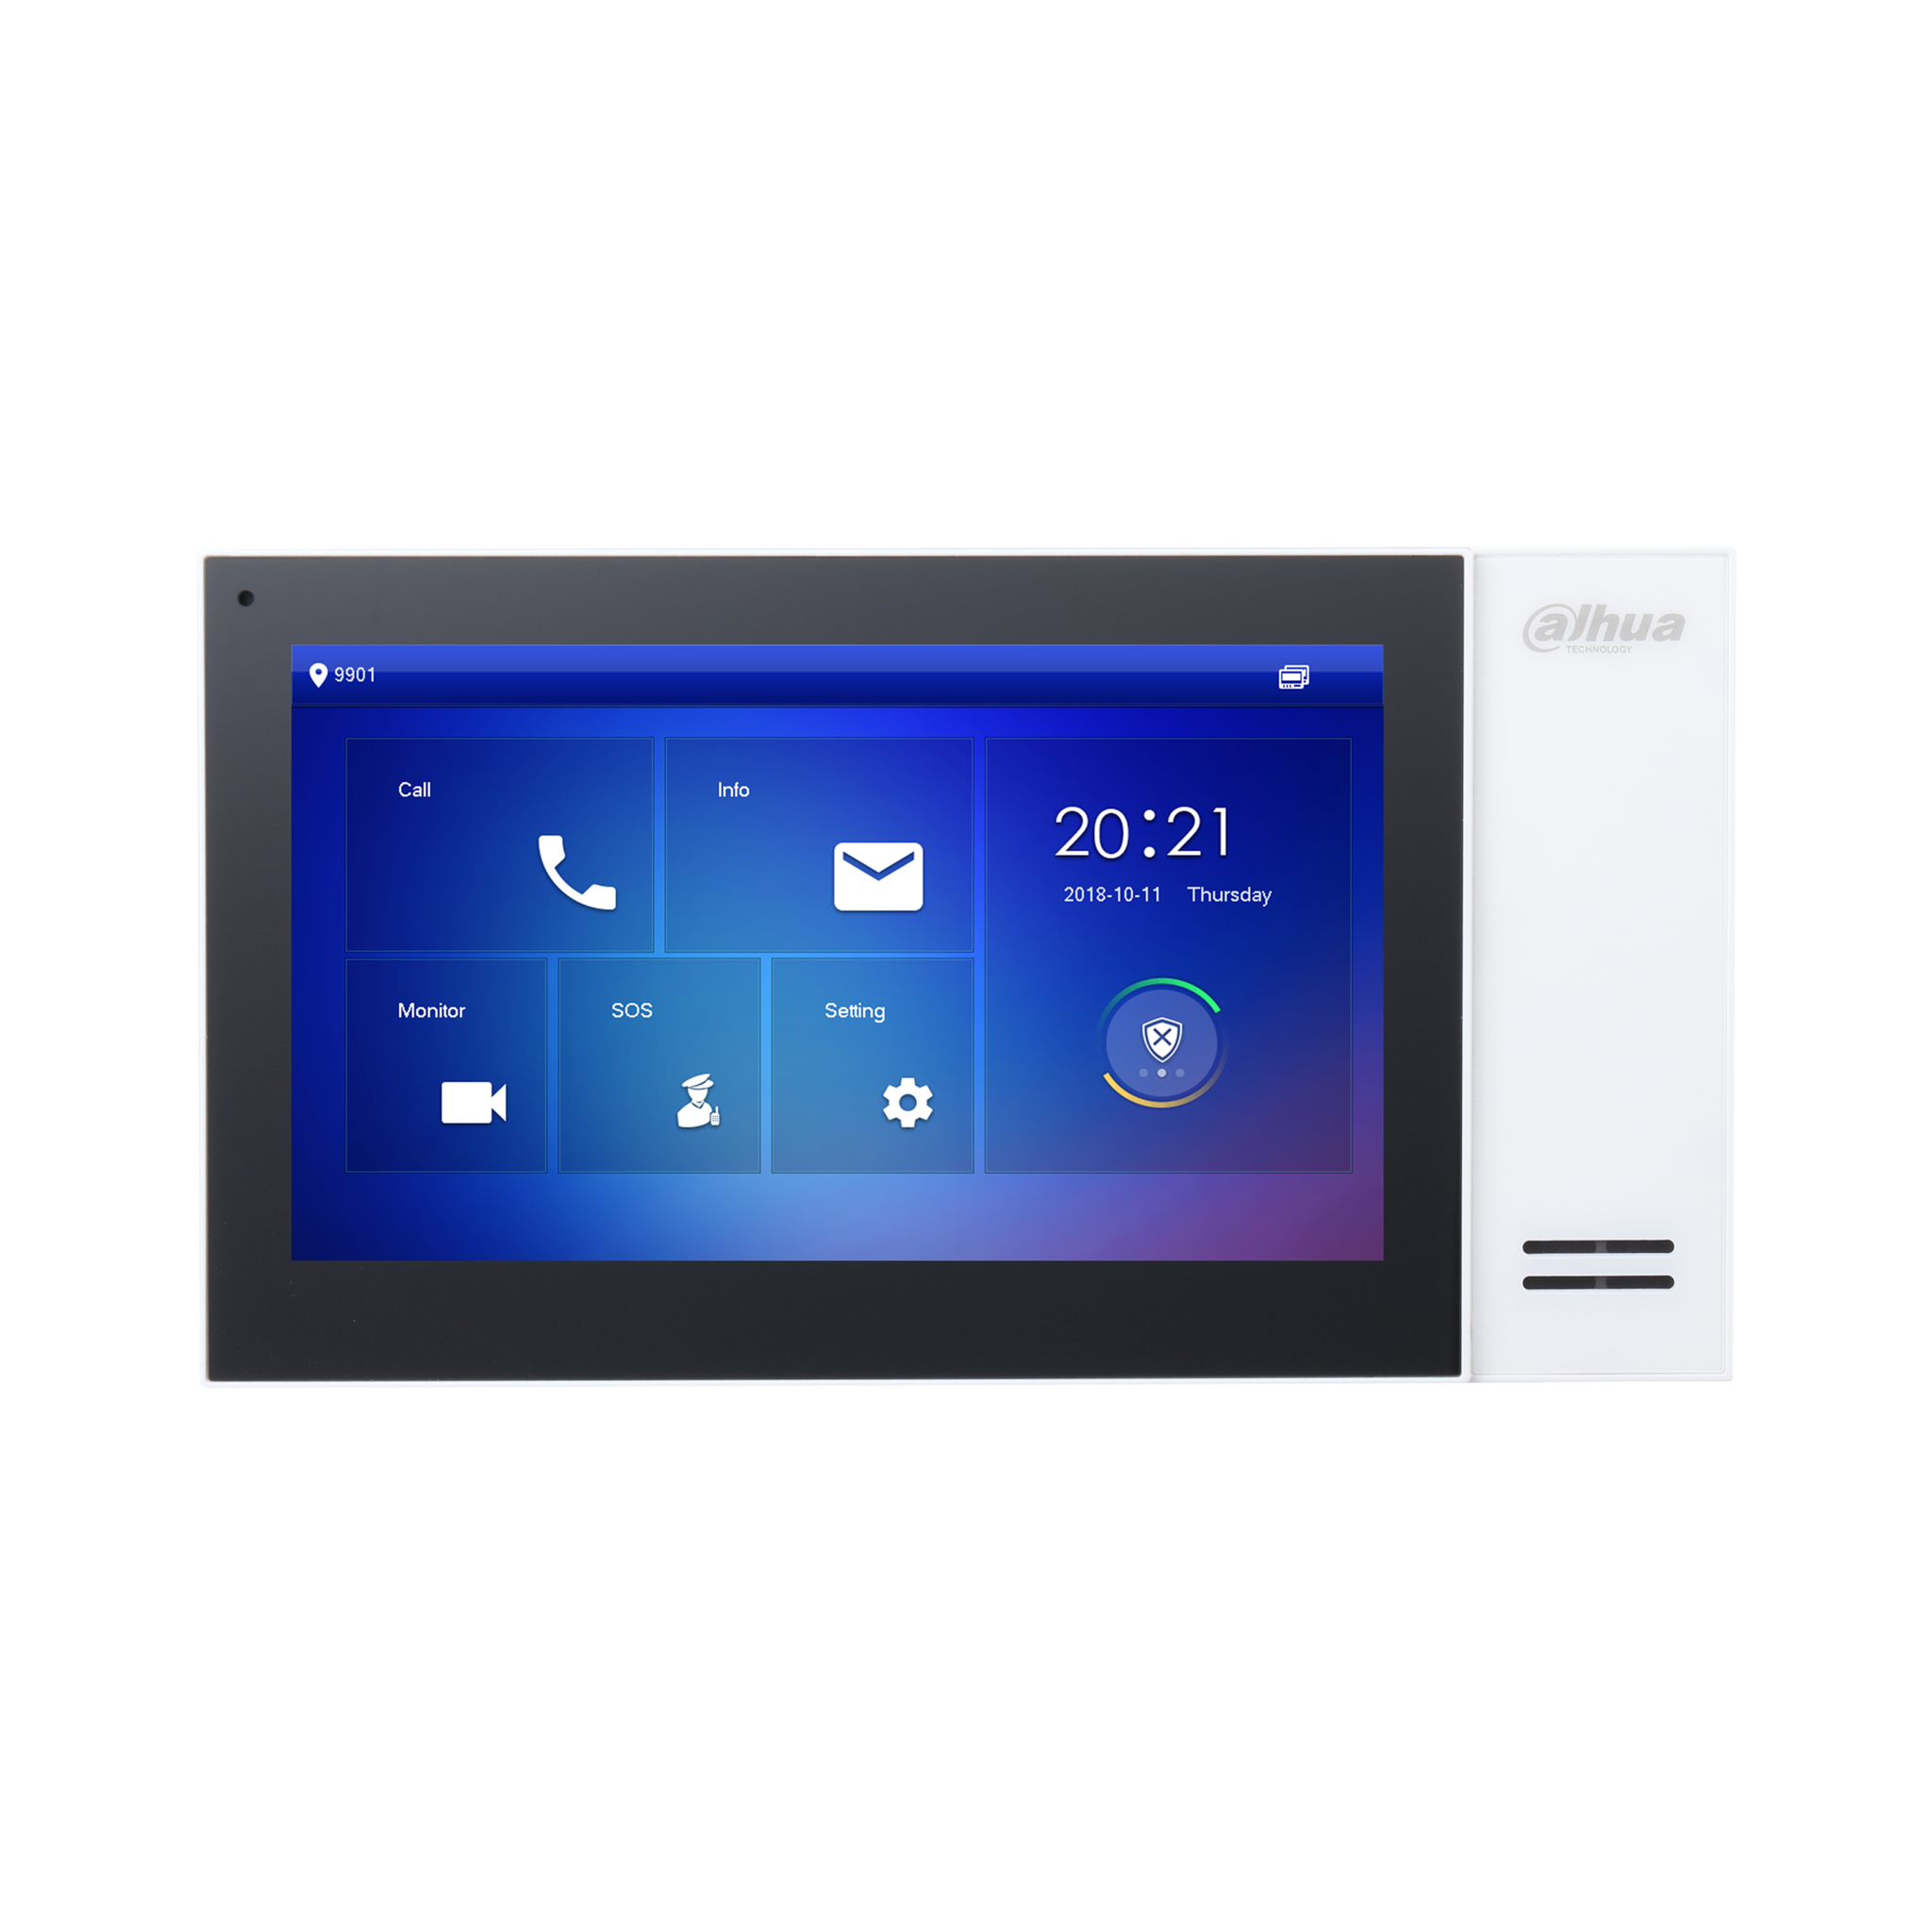 Dahua DHI-VTH2421FW-P 7 Inch Touch Screen IP Indoor Monitor